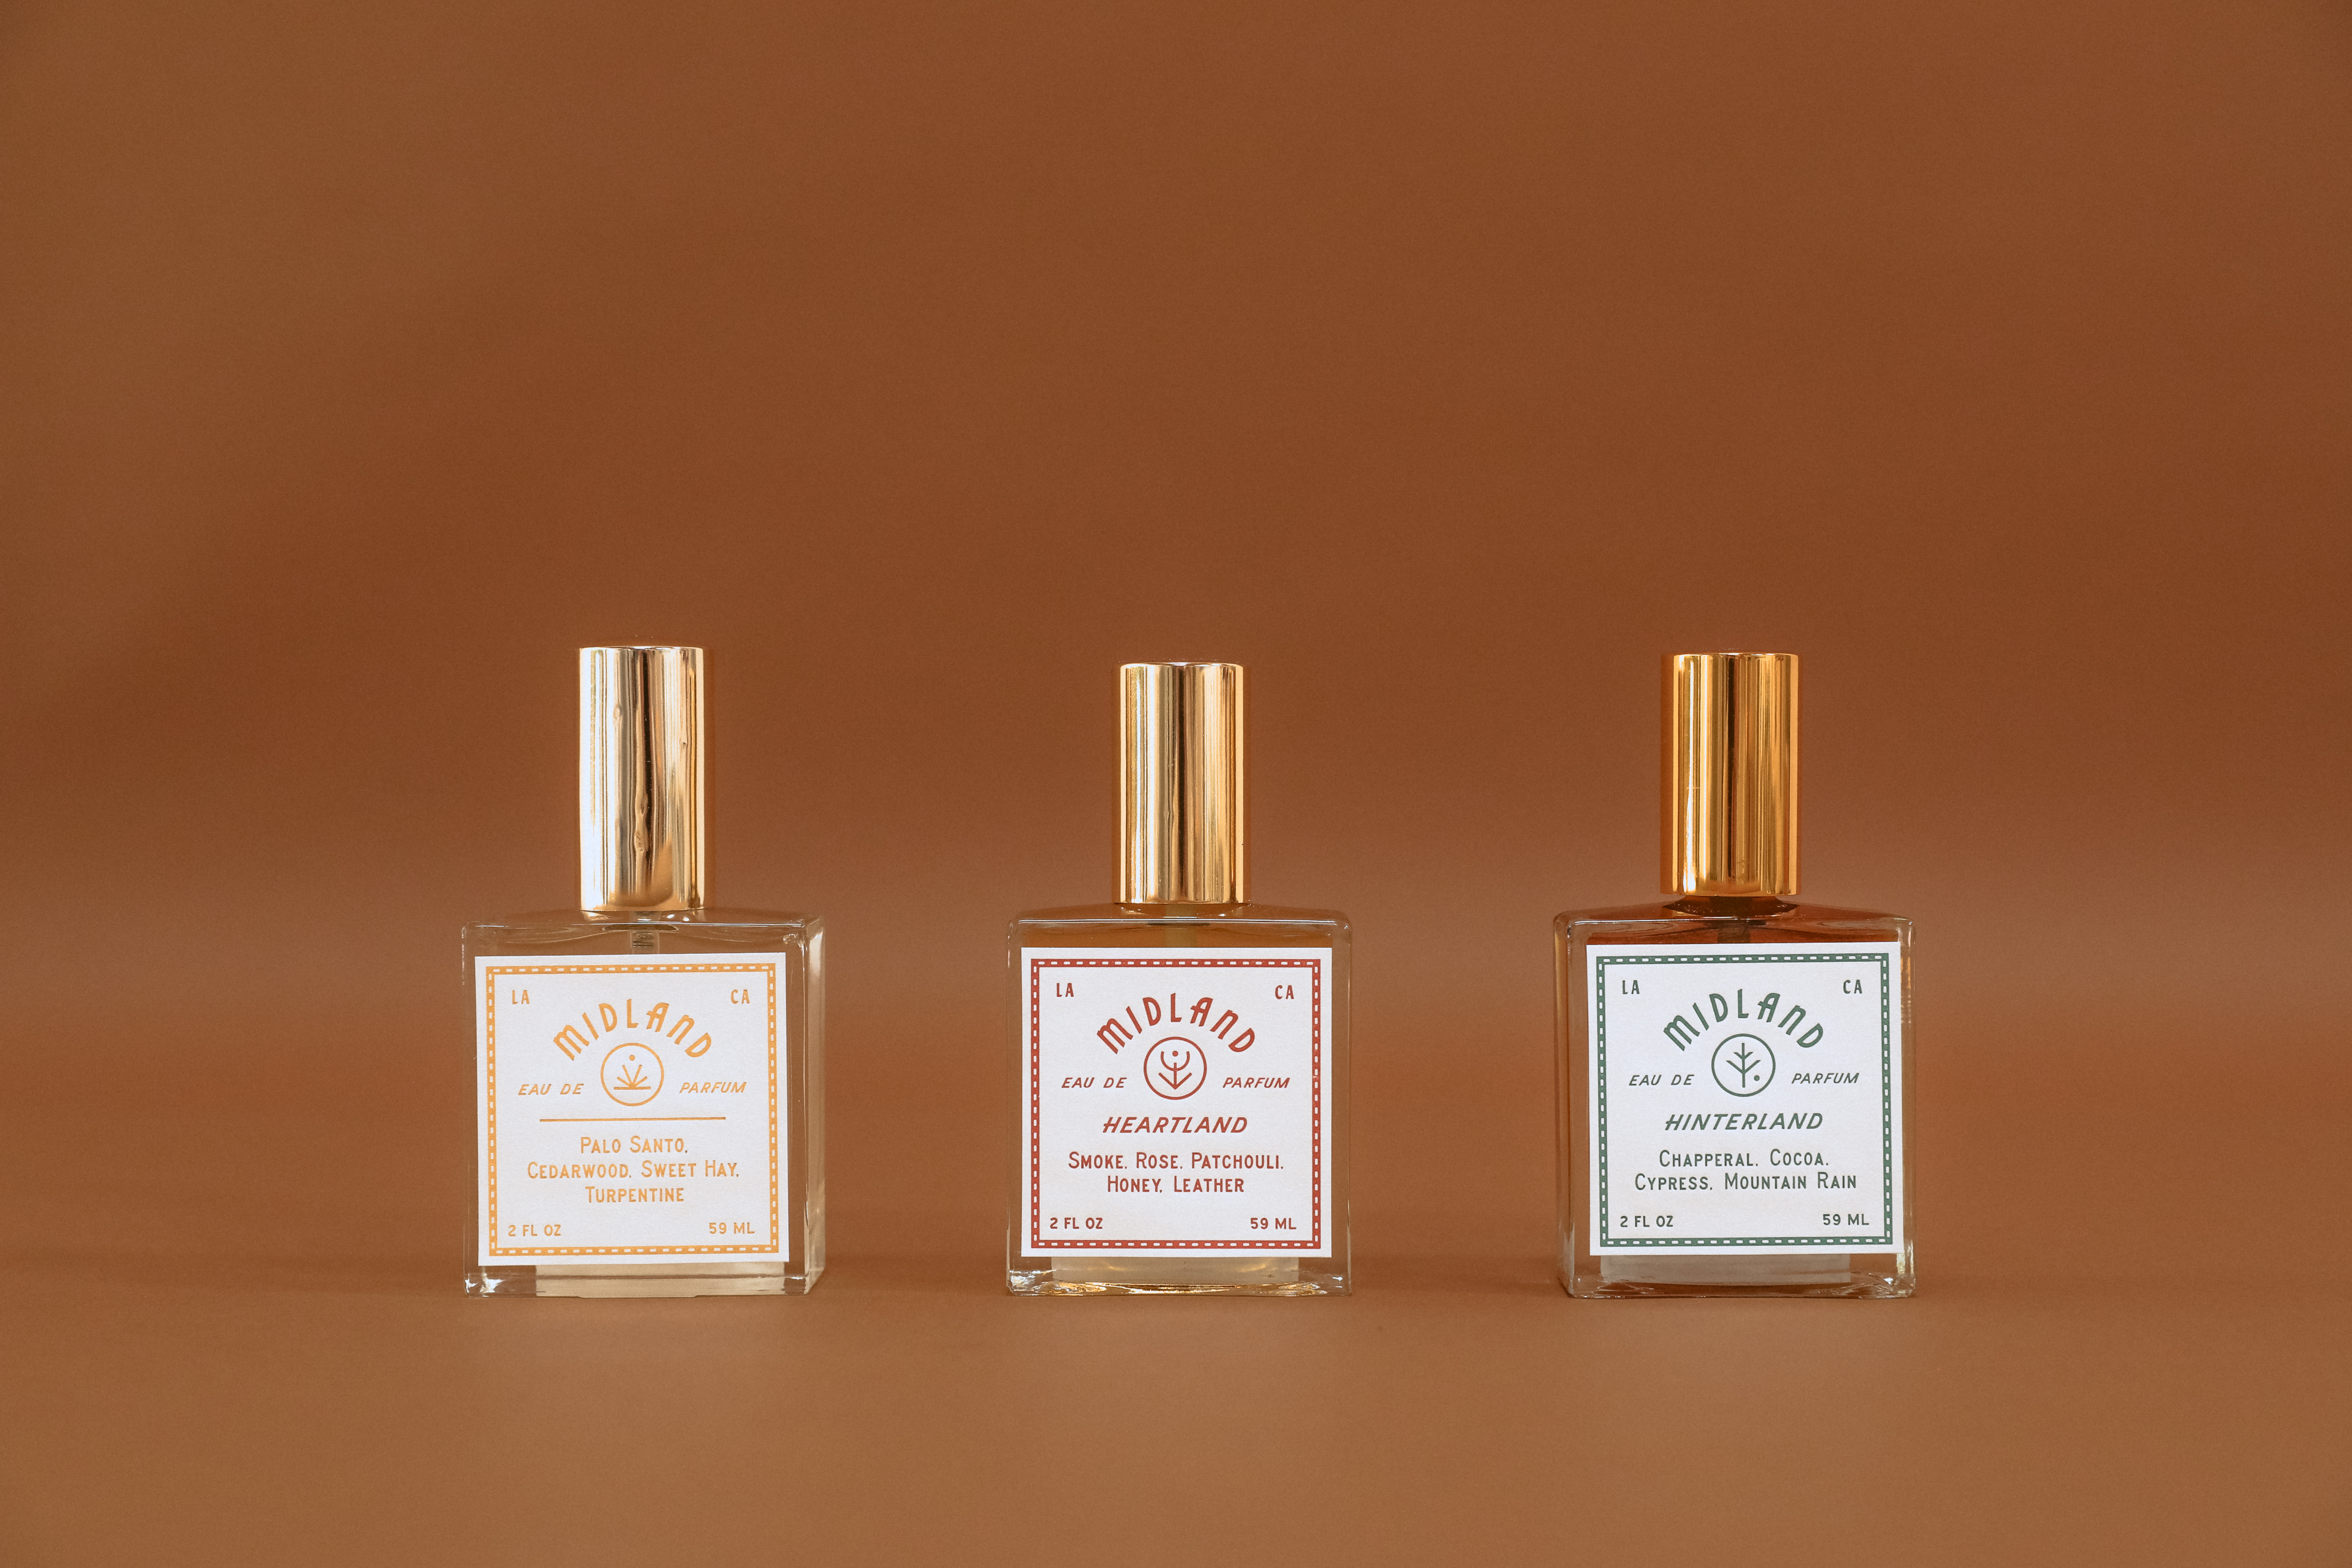 Introducing Midland Scents